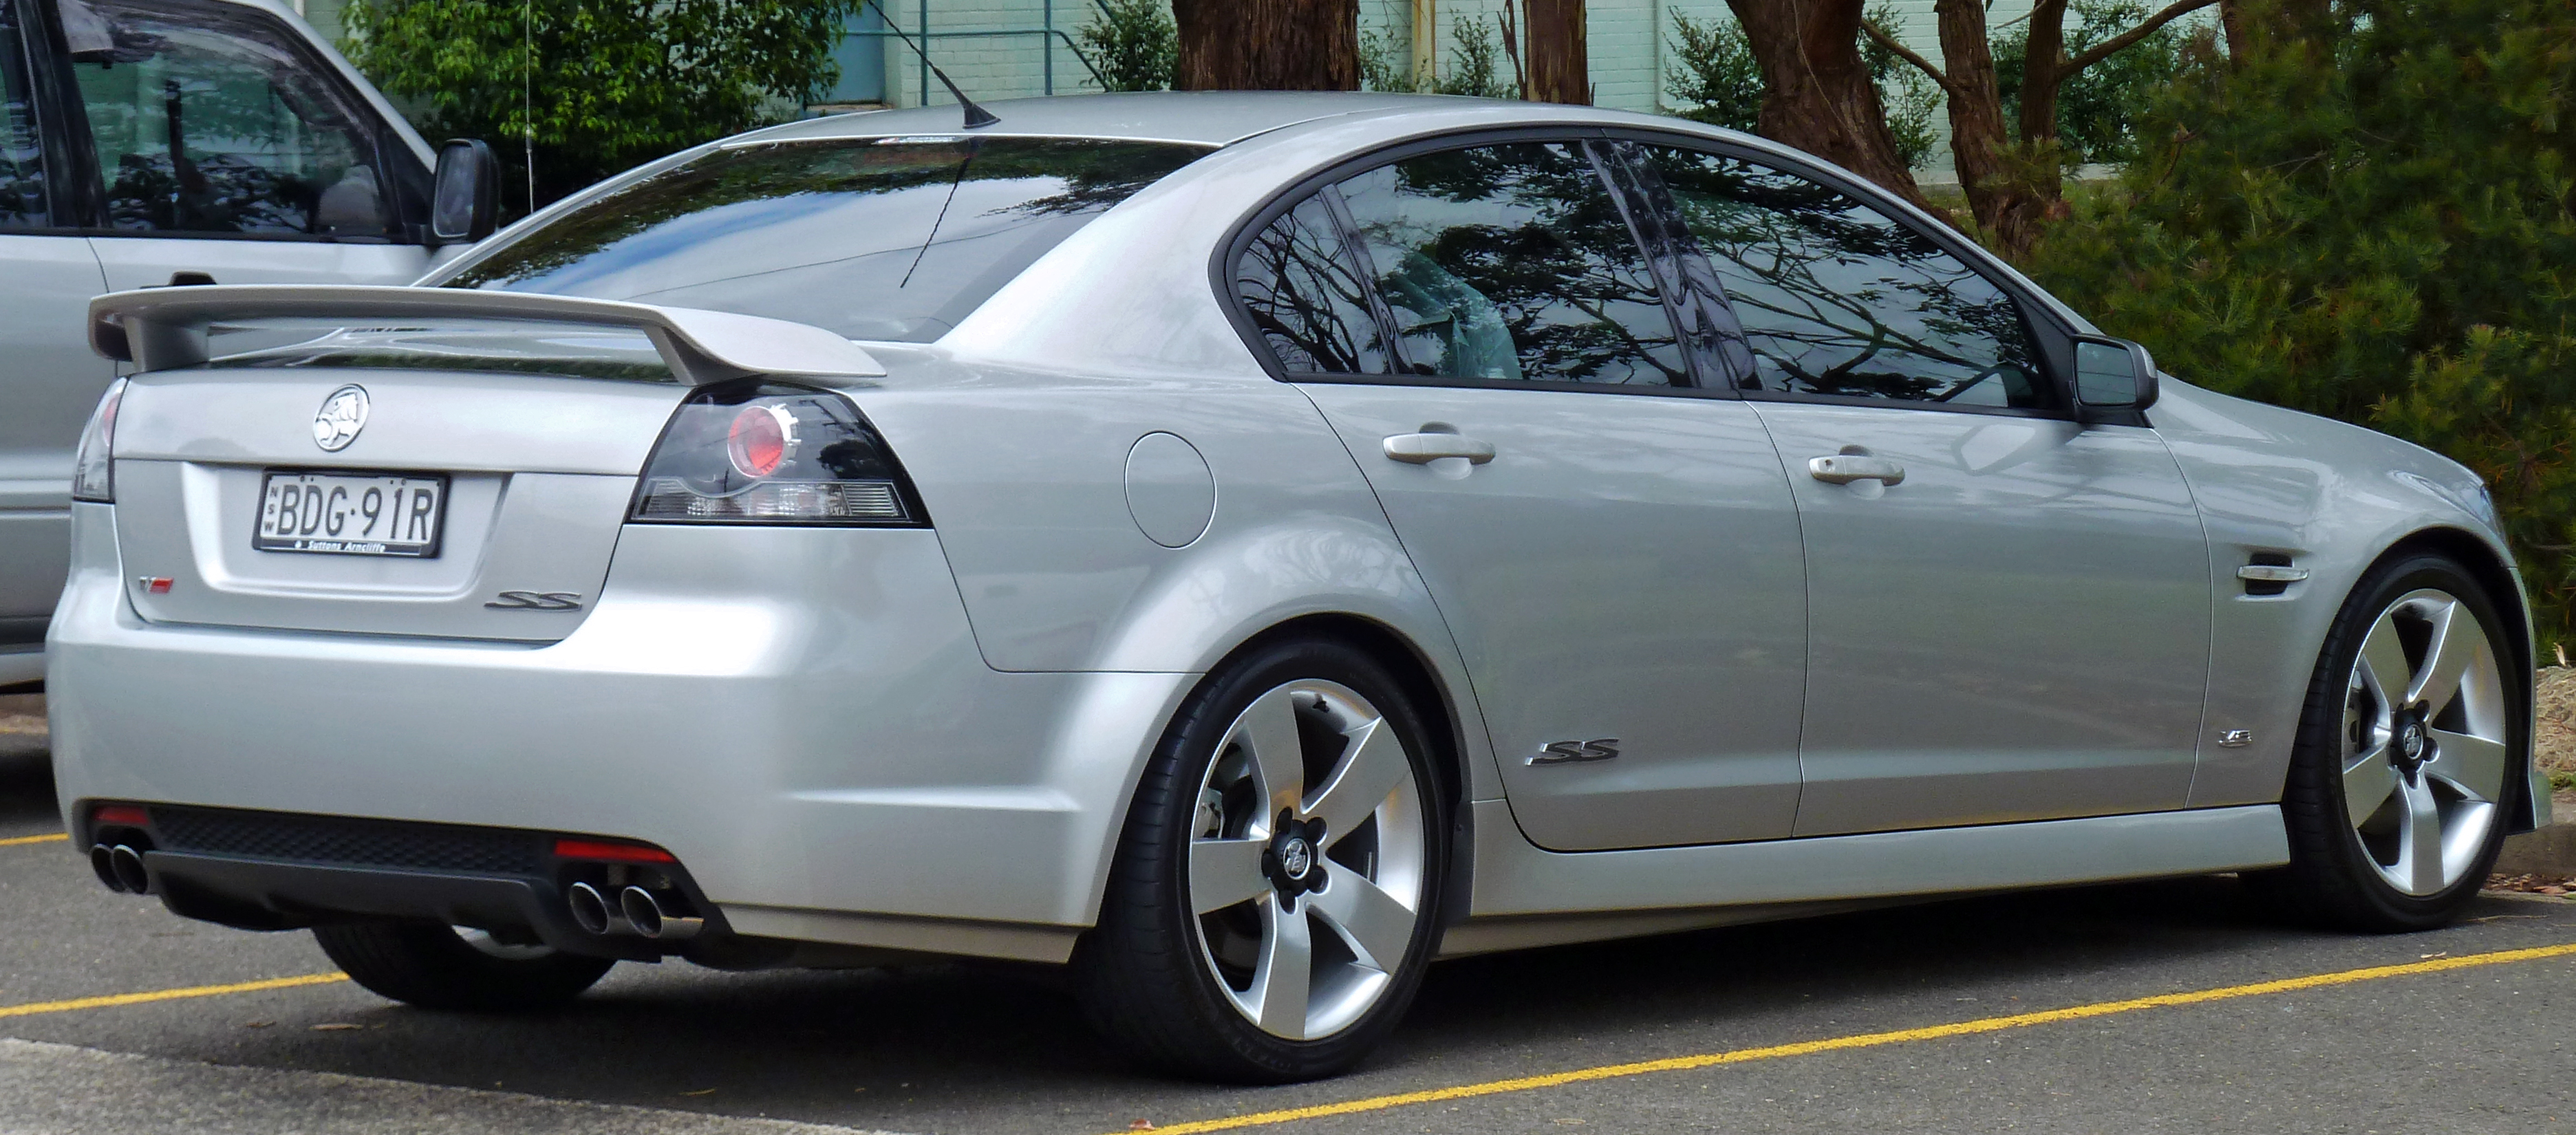 File 2006 2009 Holden Ve Commodore Ss V Sedan 2010 12 28